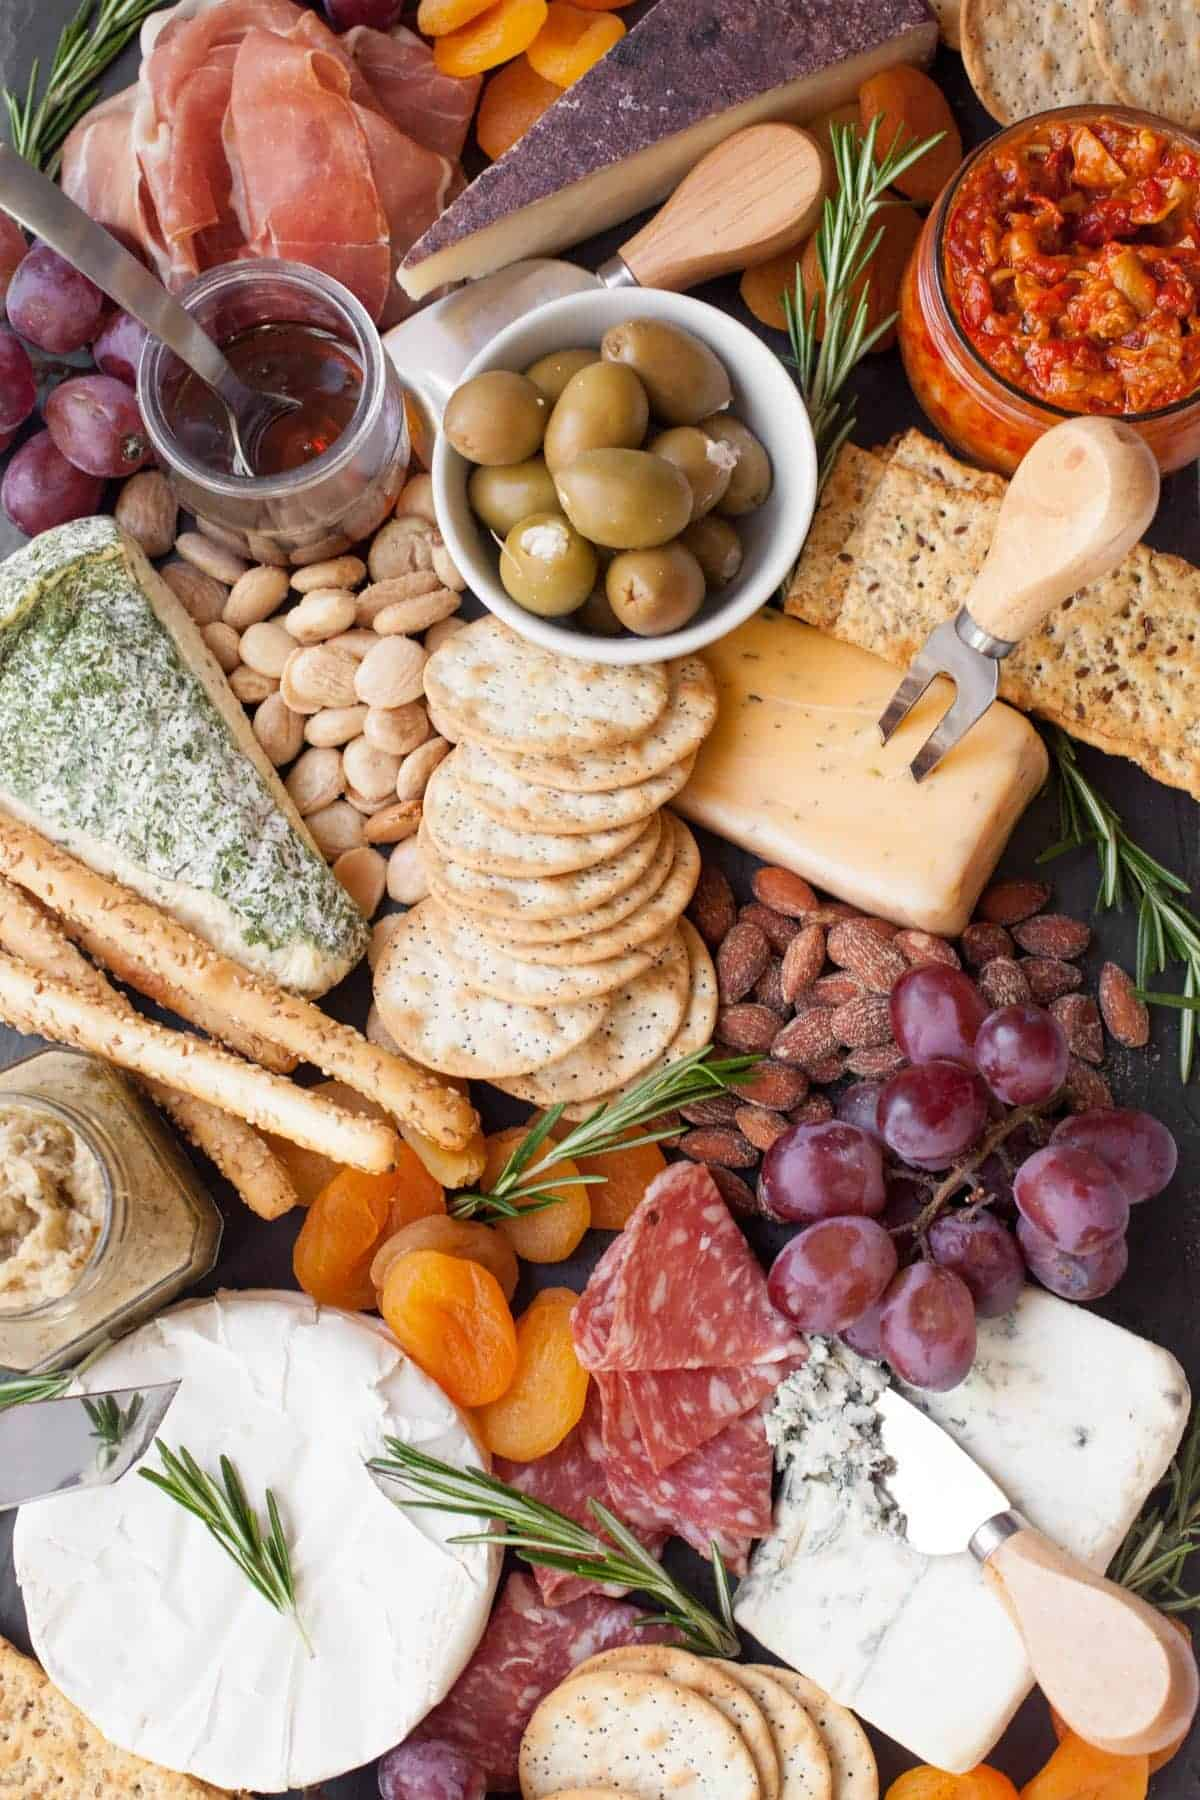 How to Make an Awesome Cheese Board